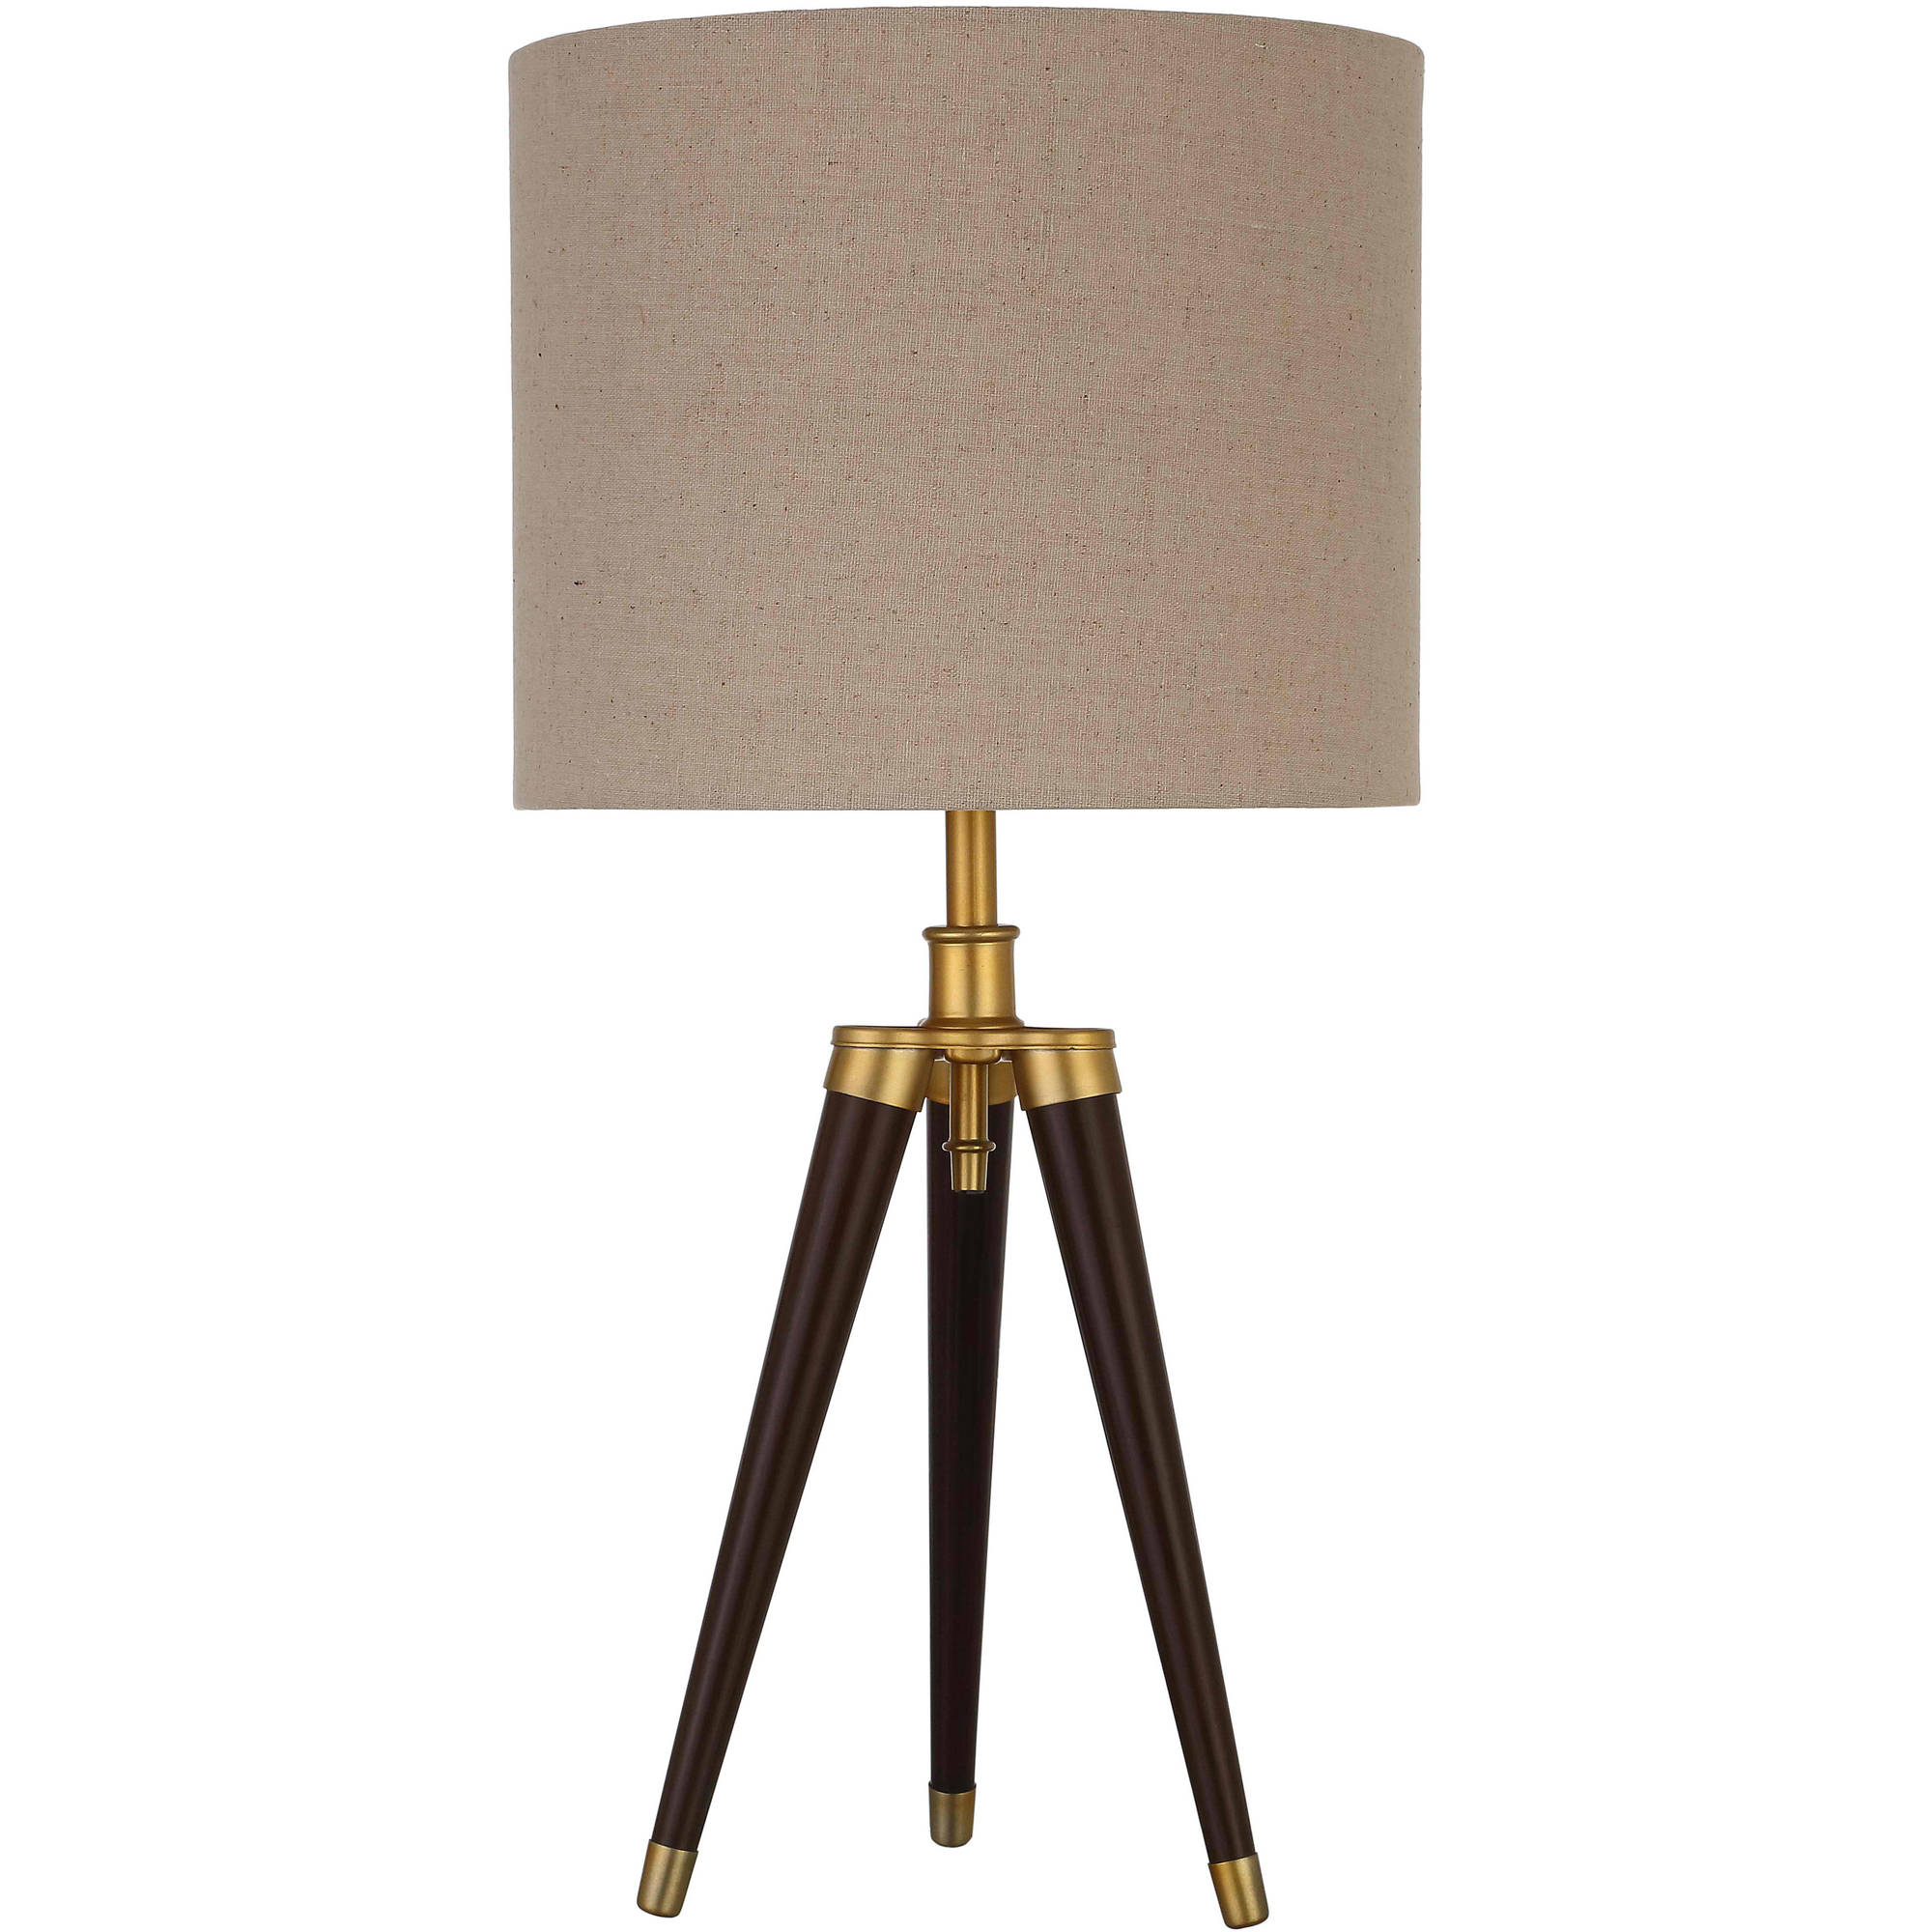 hight resolution of better homes and gardens tripod lamp tripod table lamp easy on off switch 22 height 55 9cm mocha finish walmart com